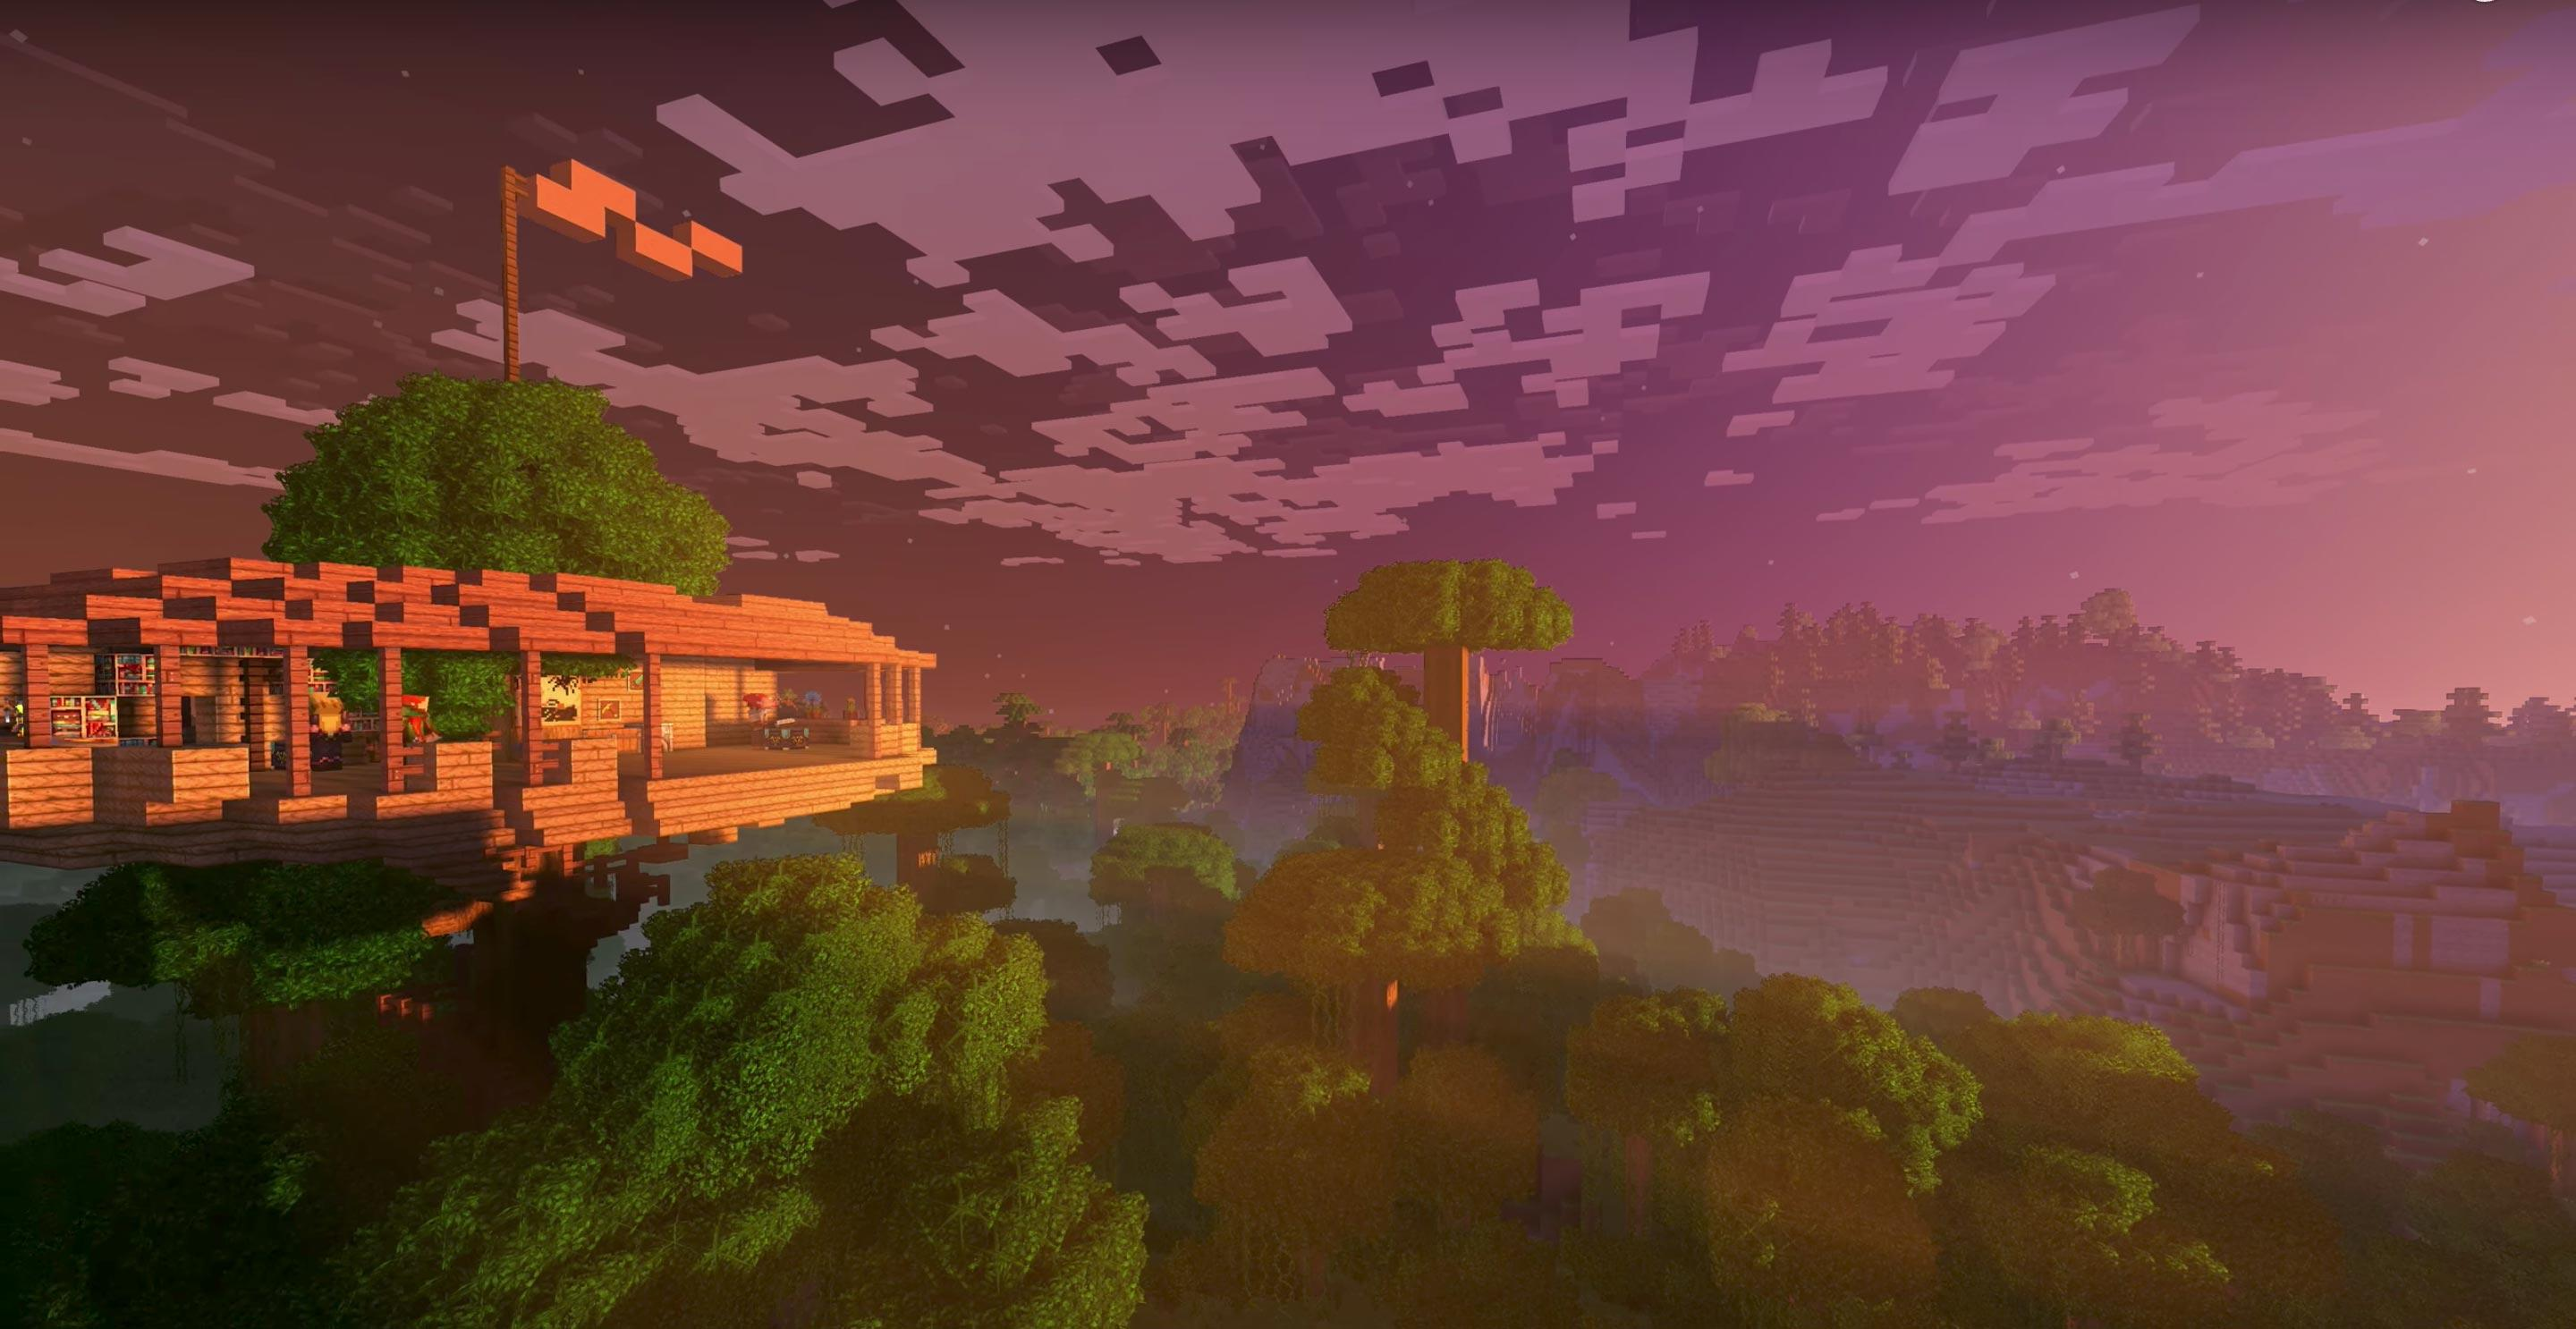 In the fall of 2017, Microsoft will begin selling an a downloadable Minecraft extra, the Super Duper Graphics Pack, with cloud shadows, hazy atmospheres and reflecting water.